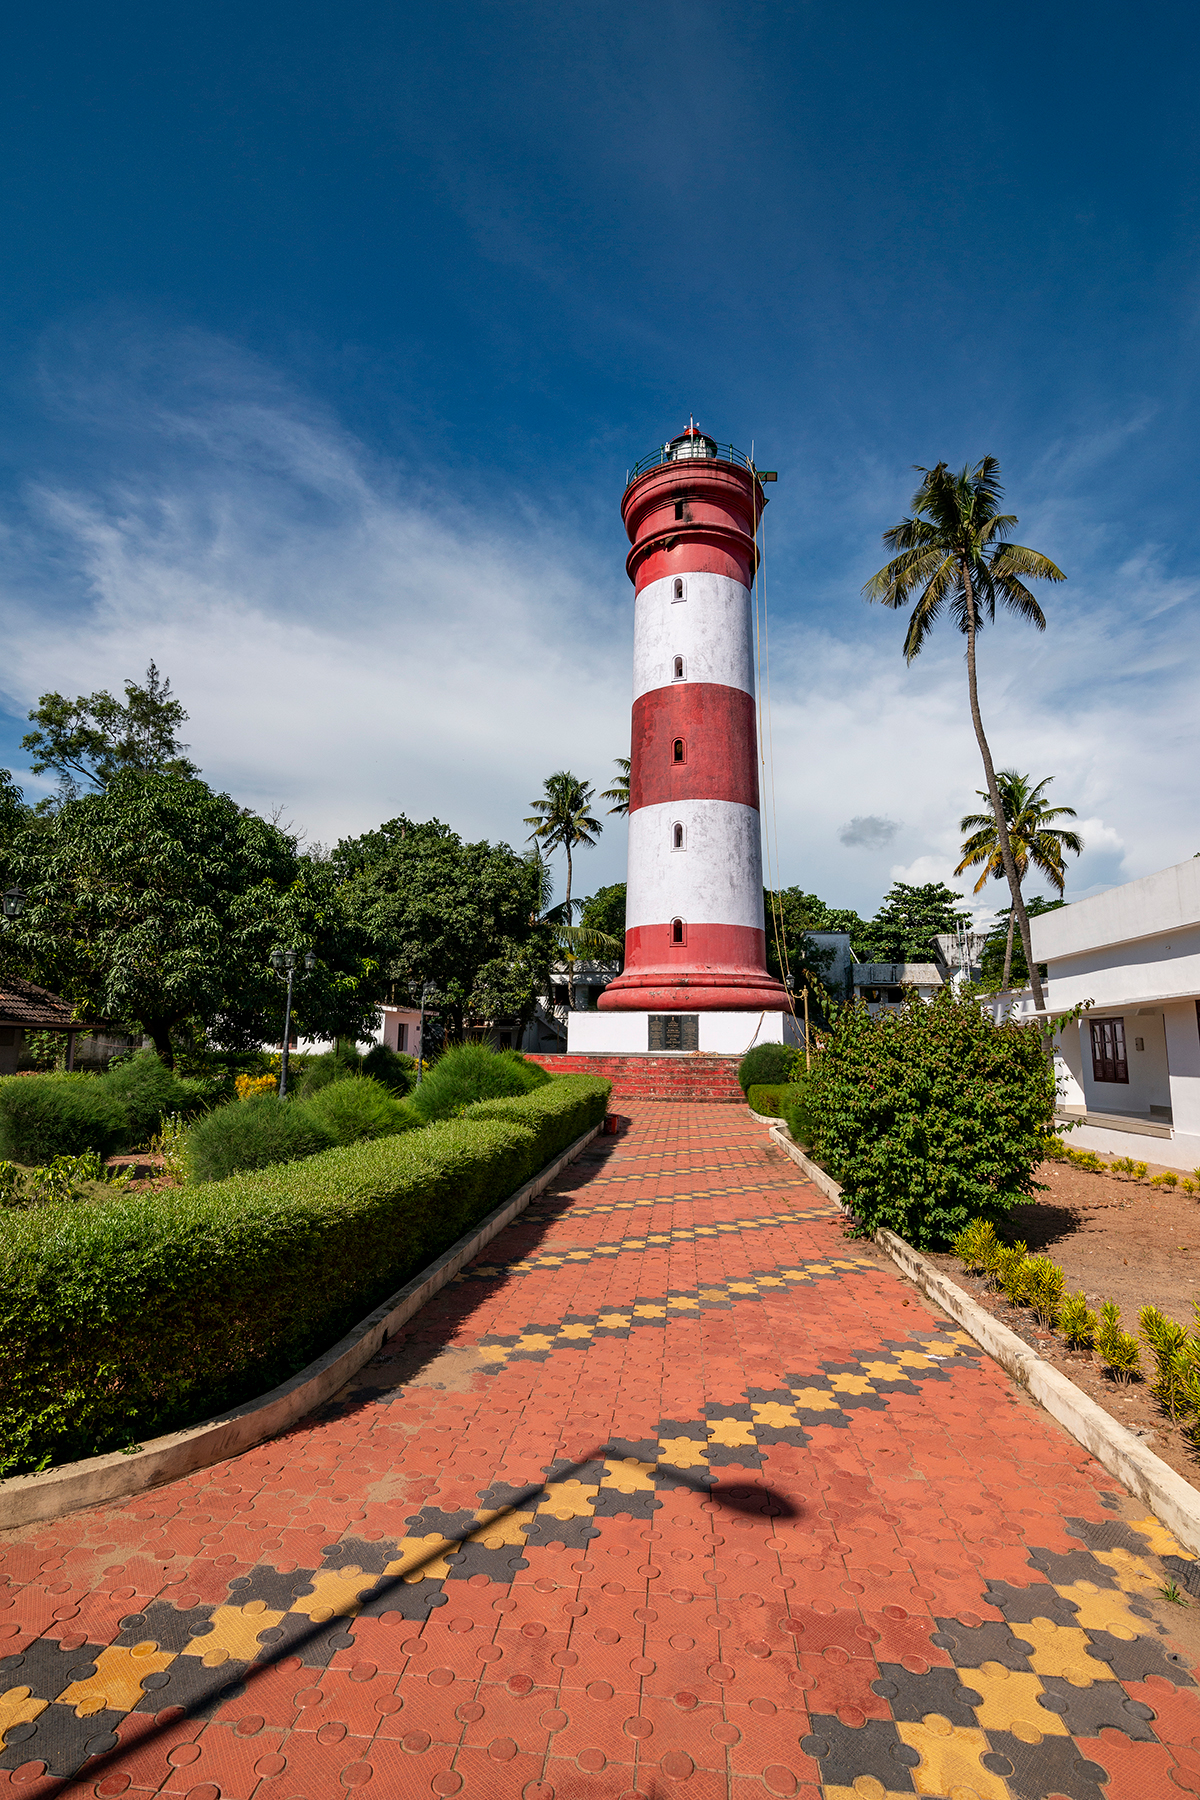 The Heritage Lighthouse